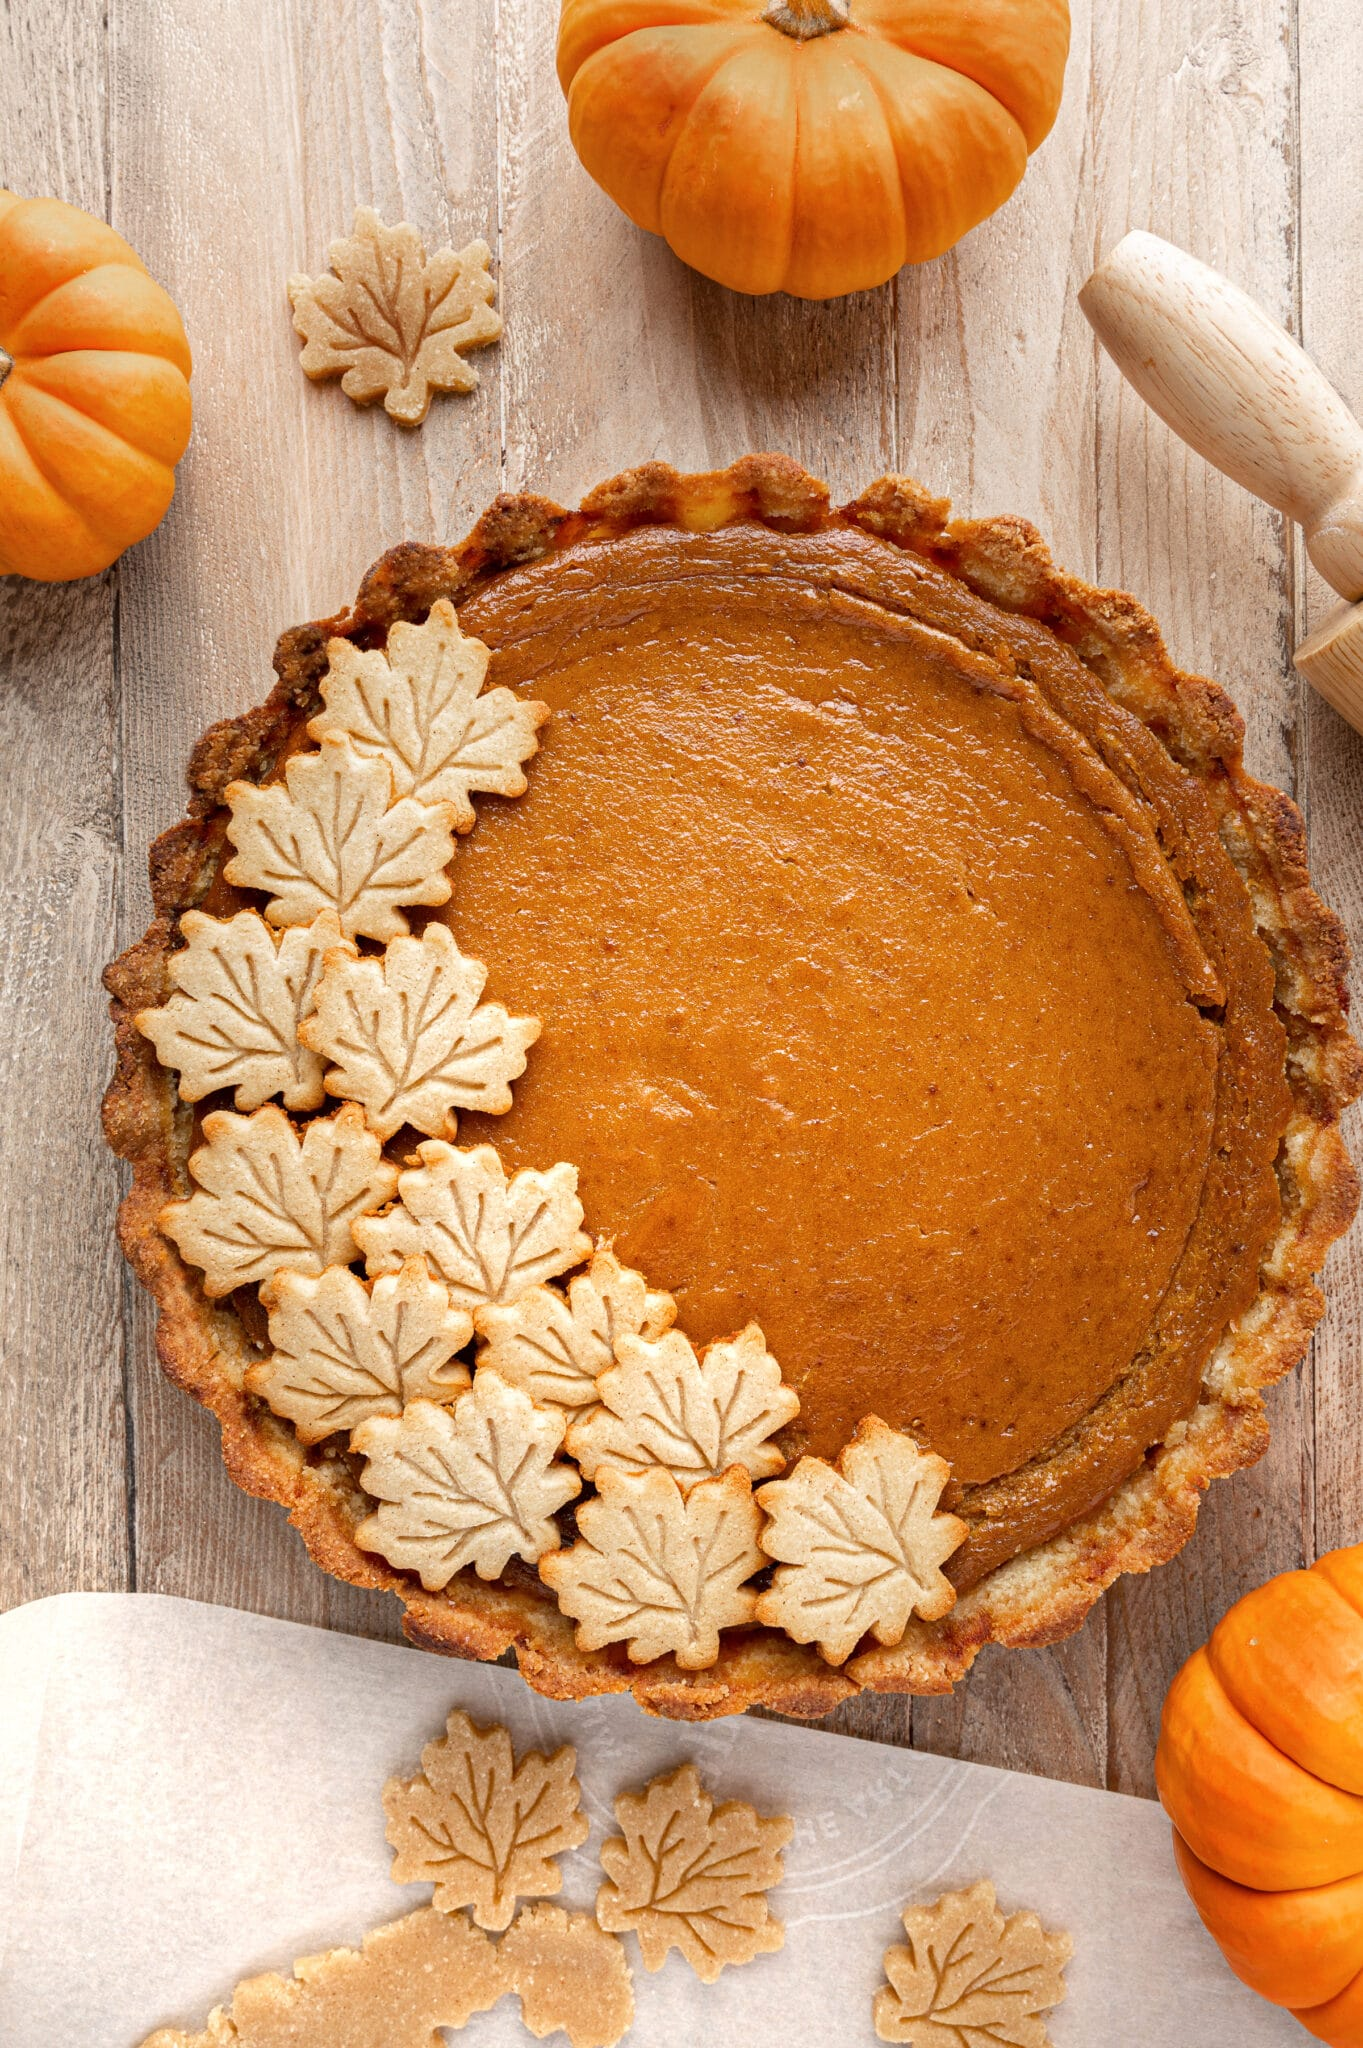 Pumpkin pie with maple shaped decorations on a rustic wooden background surrounded by mini orange pumpkins.